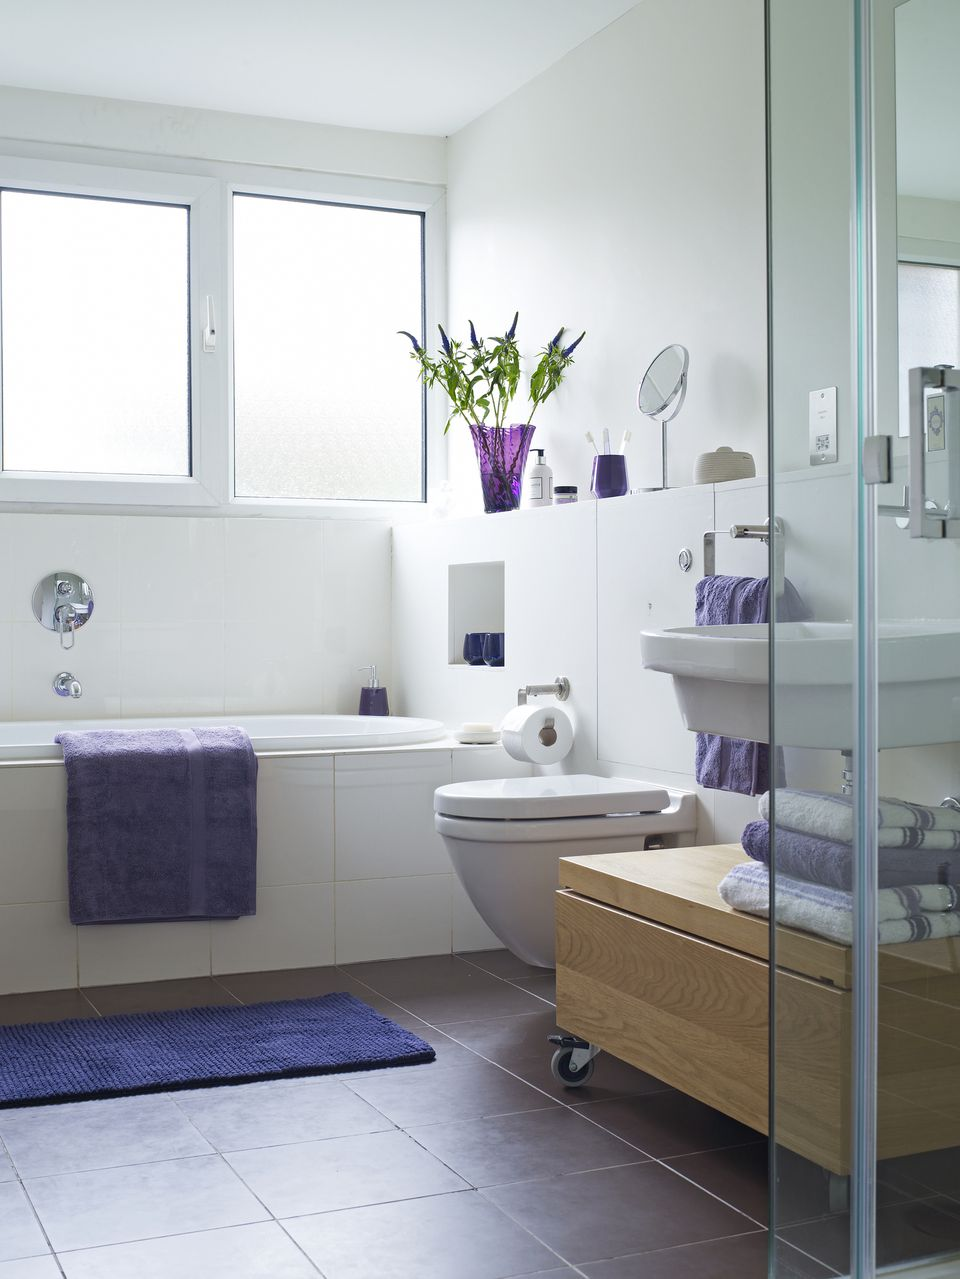 25 killer small bathroom design tips - Pictures of small bathrooms ...